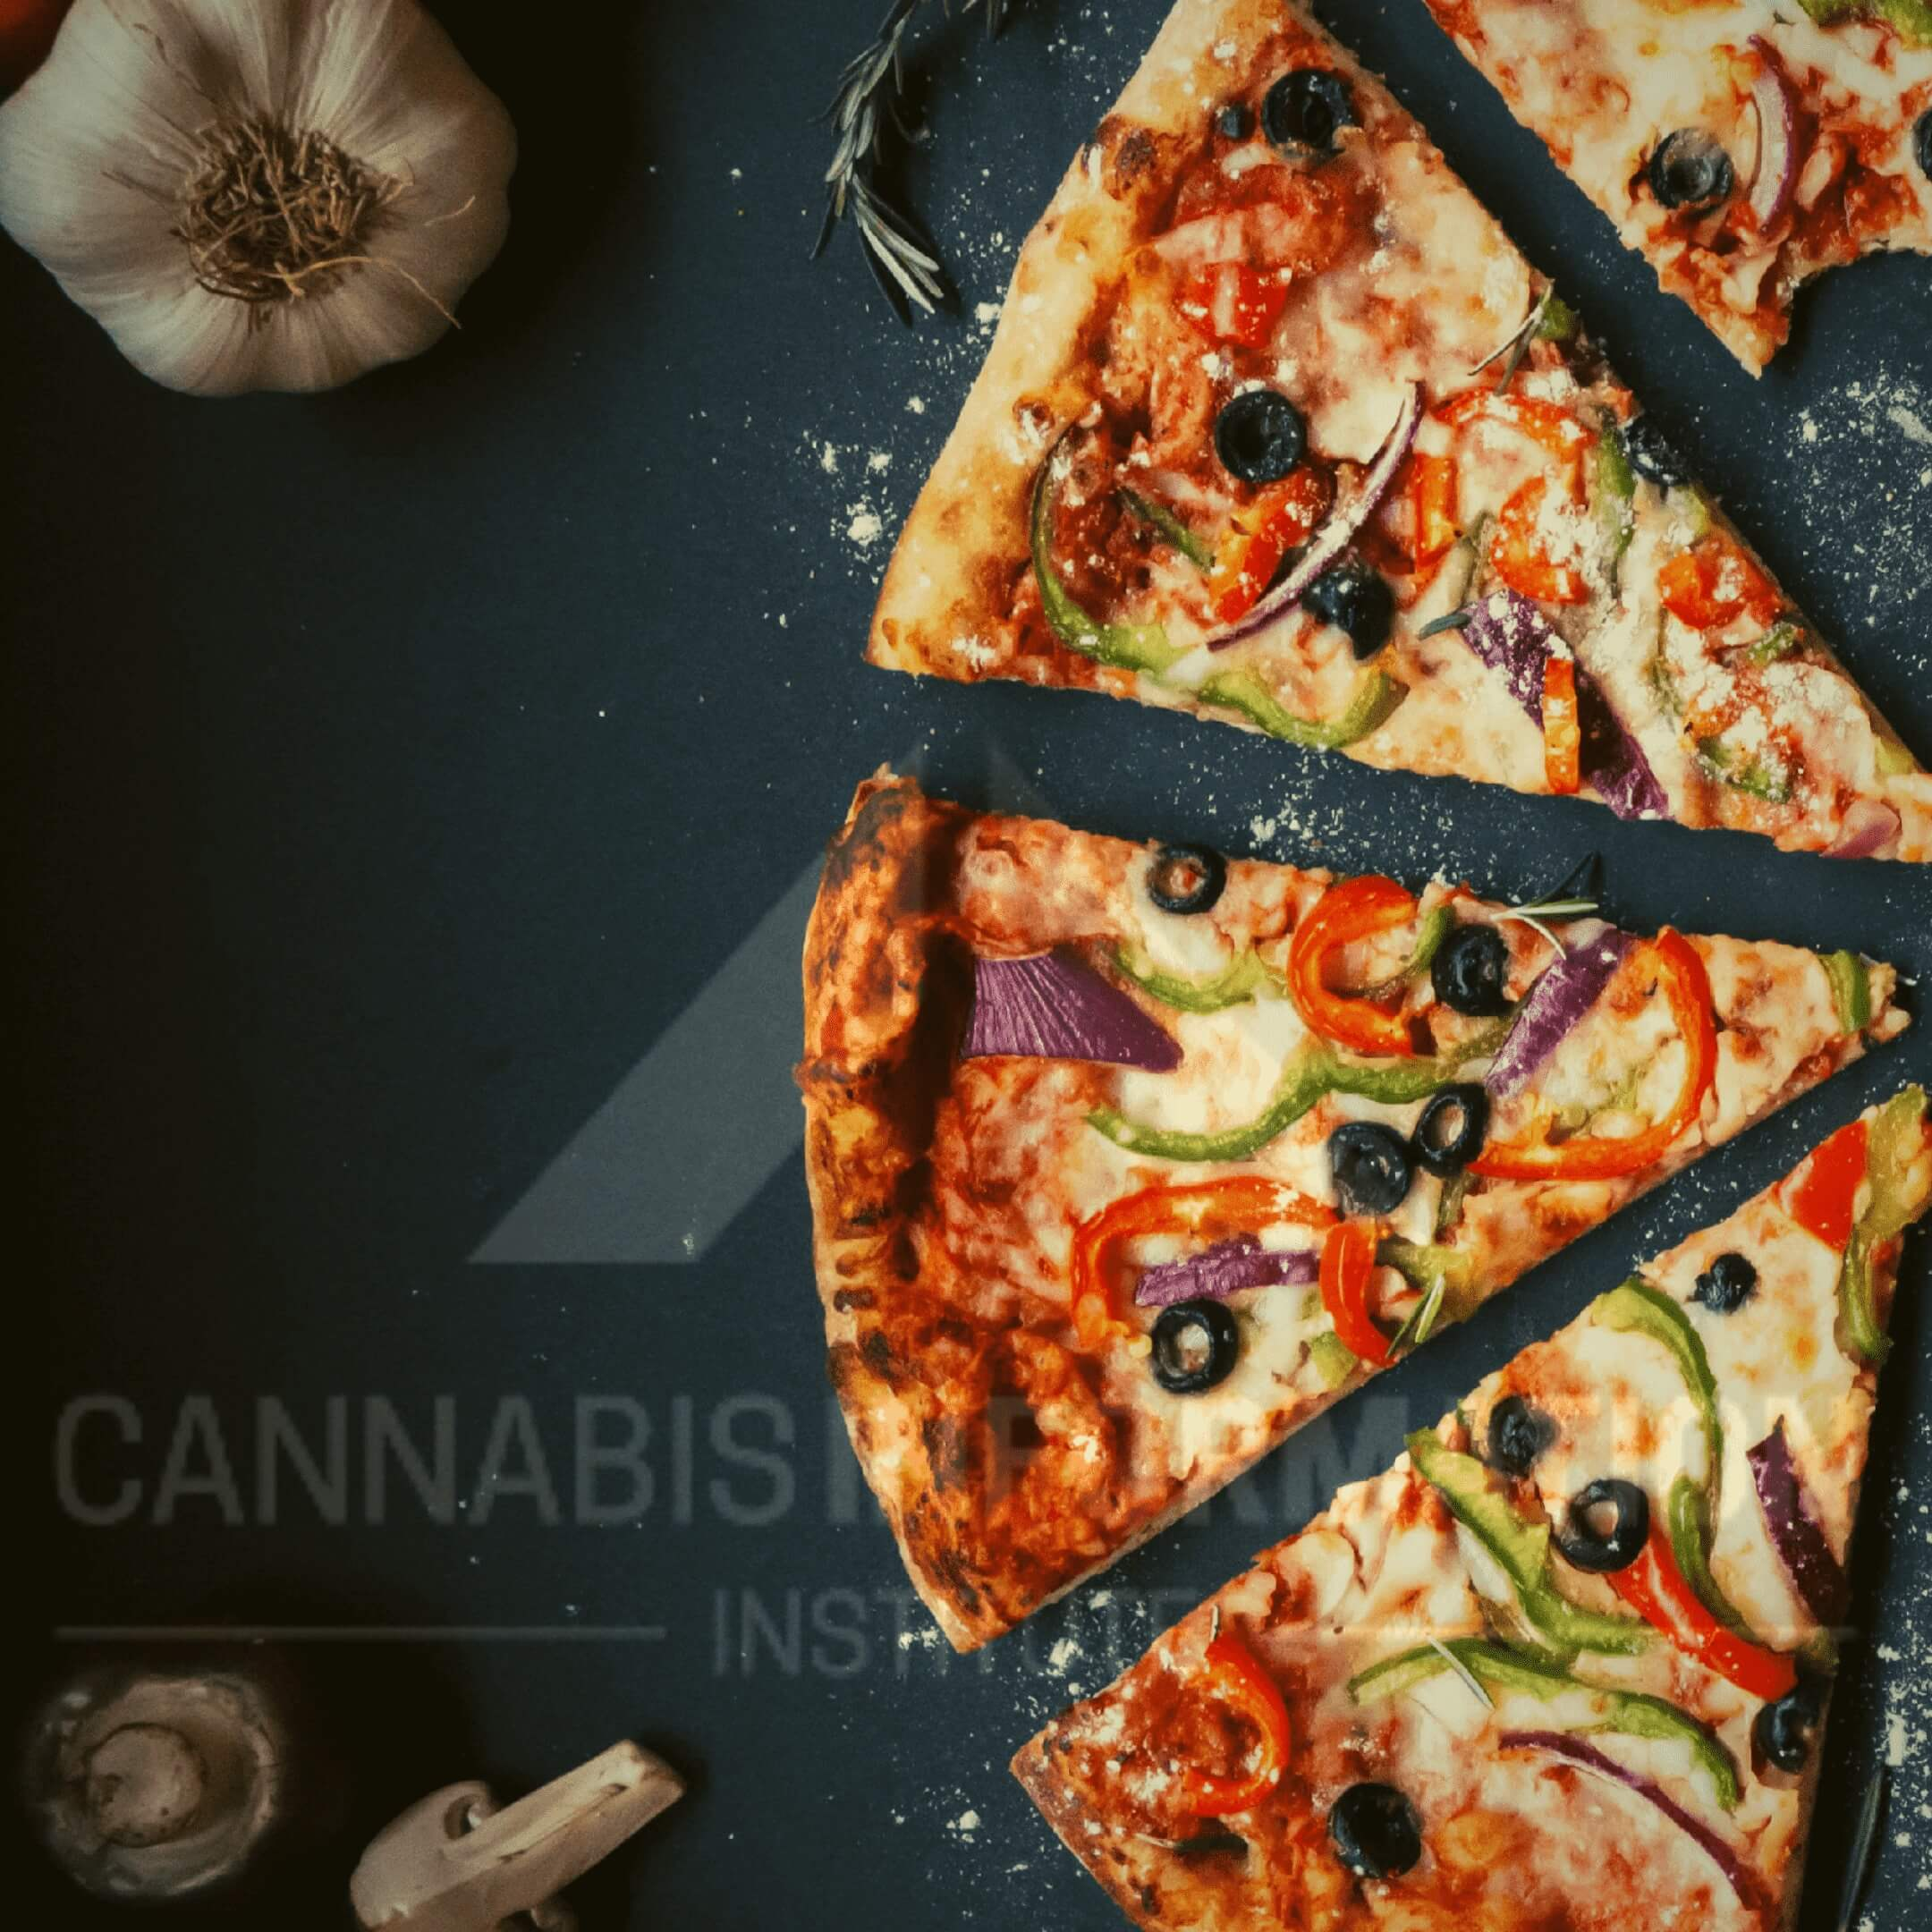 how to make cannabis pizza, canna pizza, marijuana pizza recipe, infused pizza, infused oil dough recipe, cannabis dough recipe, cannabis pizza dough recipe, easy cannabis pizza, easy cannabis edibles, edibles recipe using cannaoil, recipe using cannabis oil, cannabis pizza ingredients, how to make savoury edibles, infused dough, infused calzone, marijuana recipes